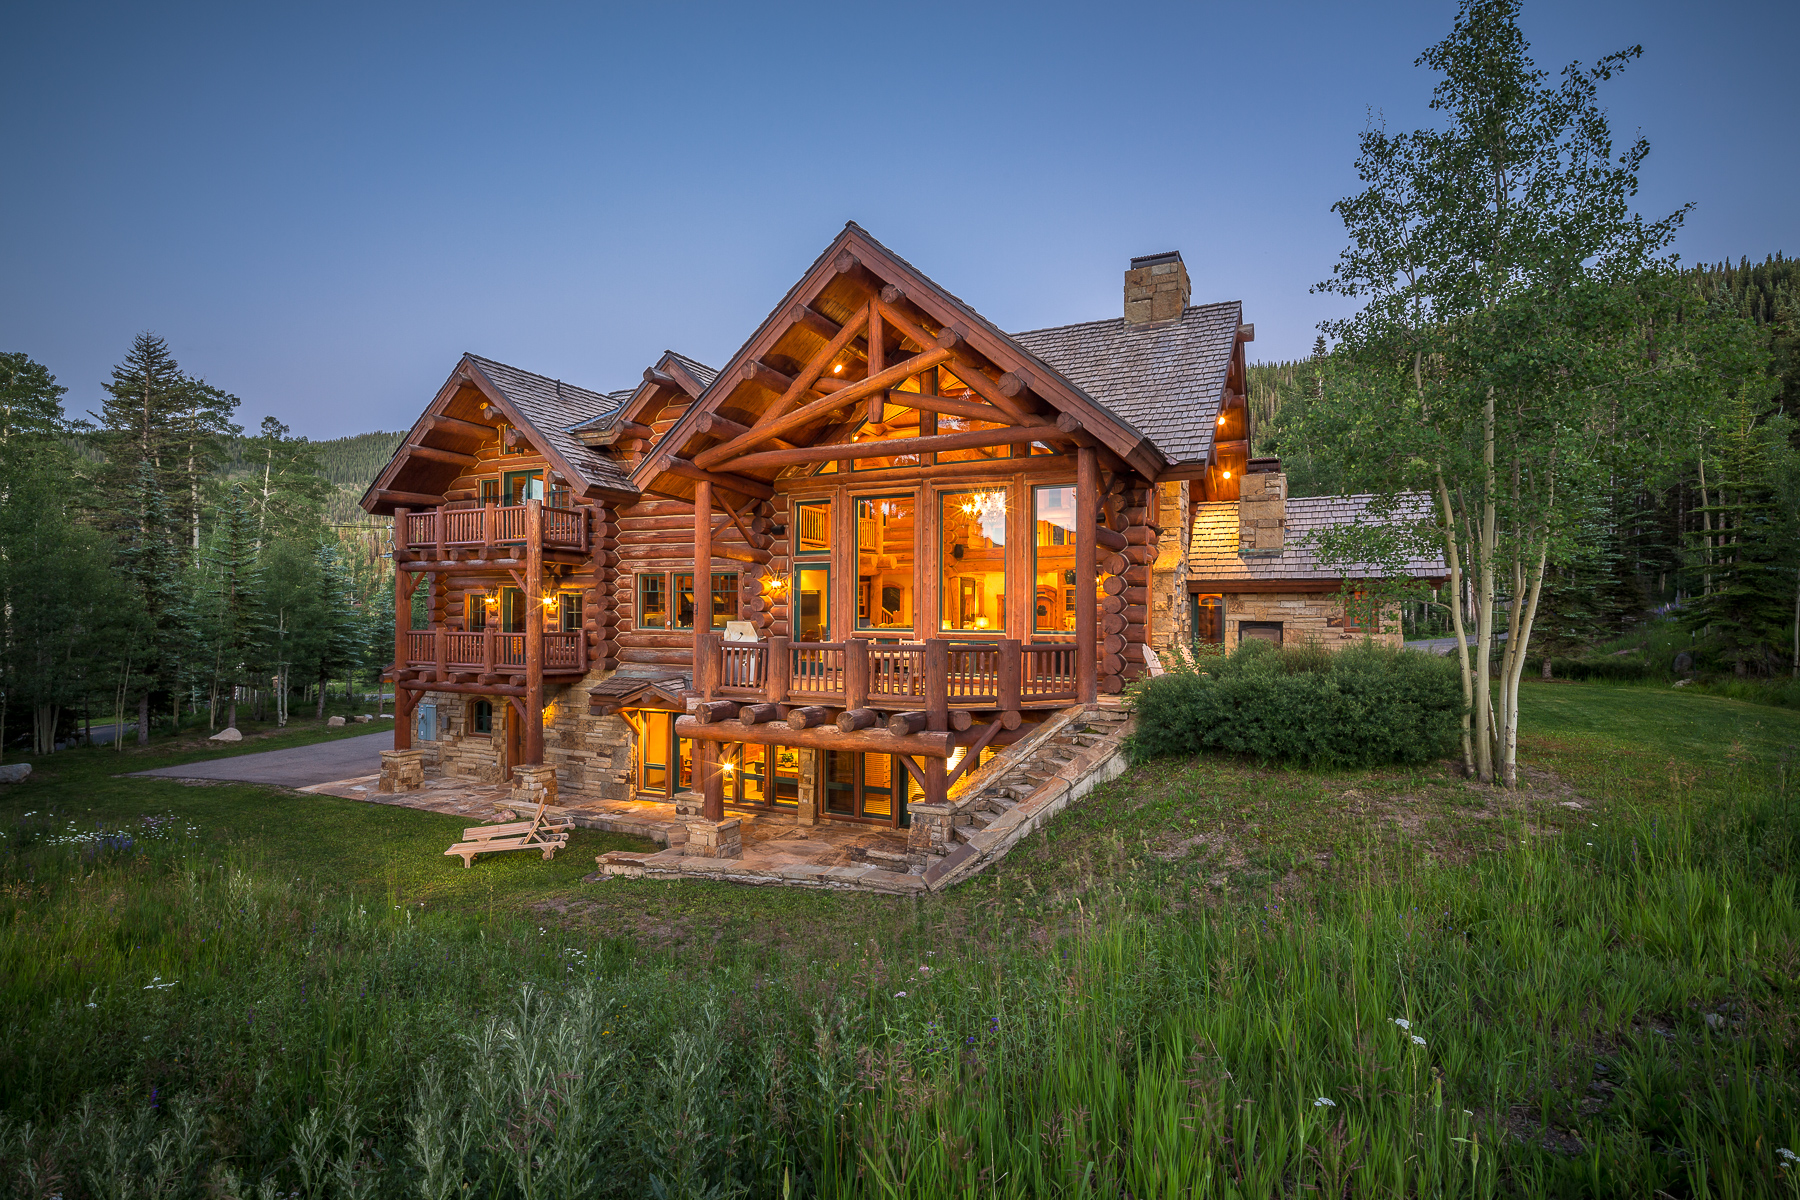 Villa per Vendita alle ore 132 High Country Telluride, Colorado, 81435 Stati Uniti